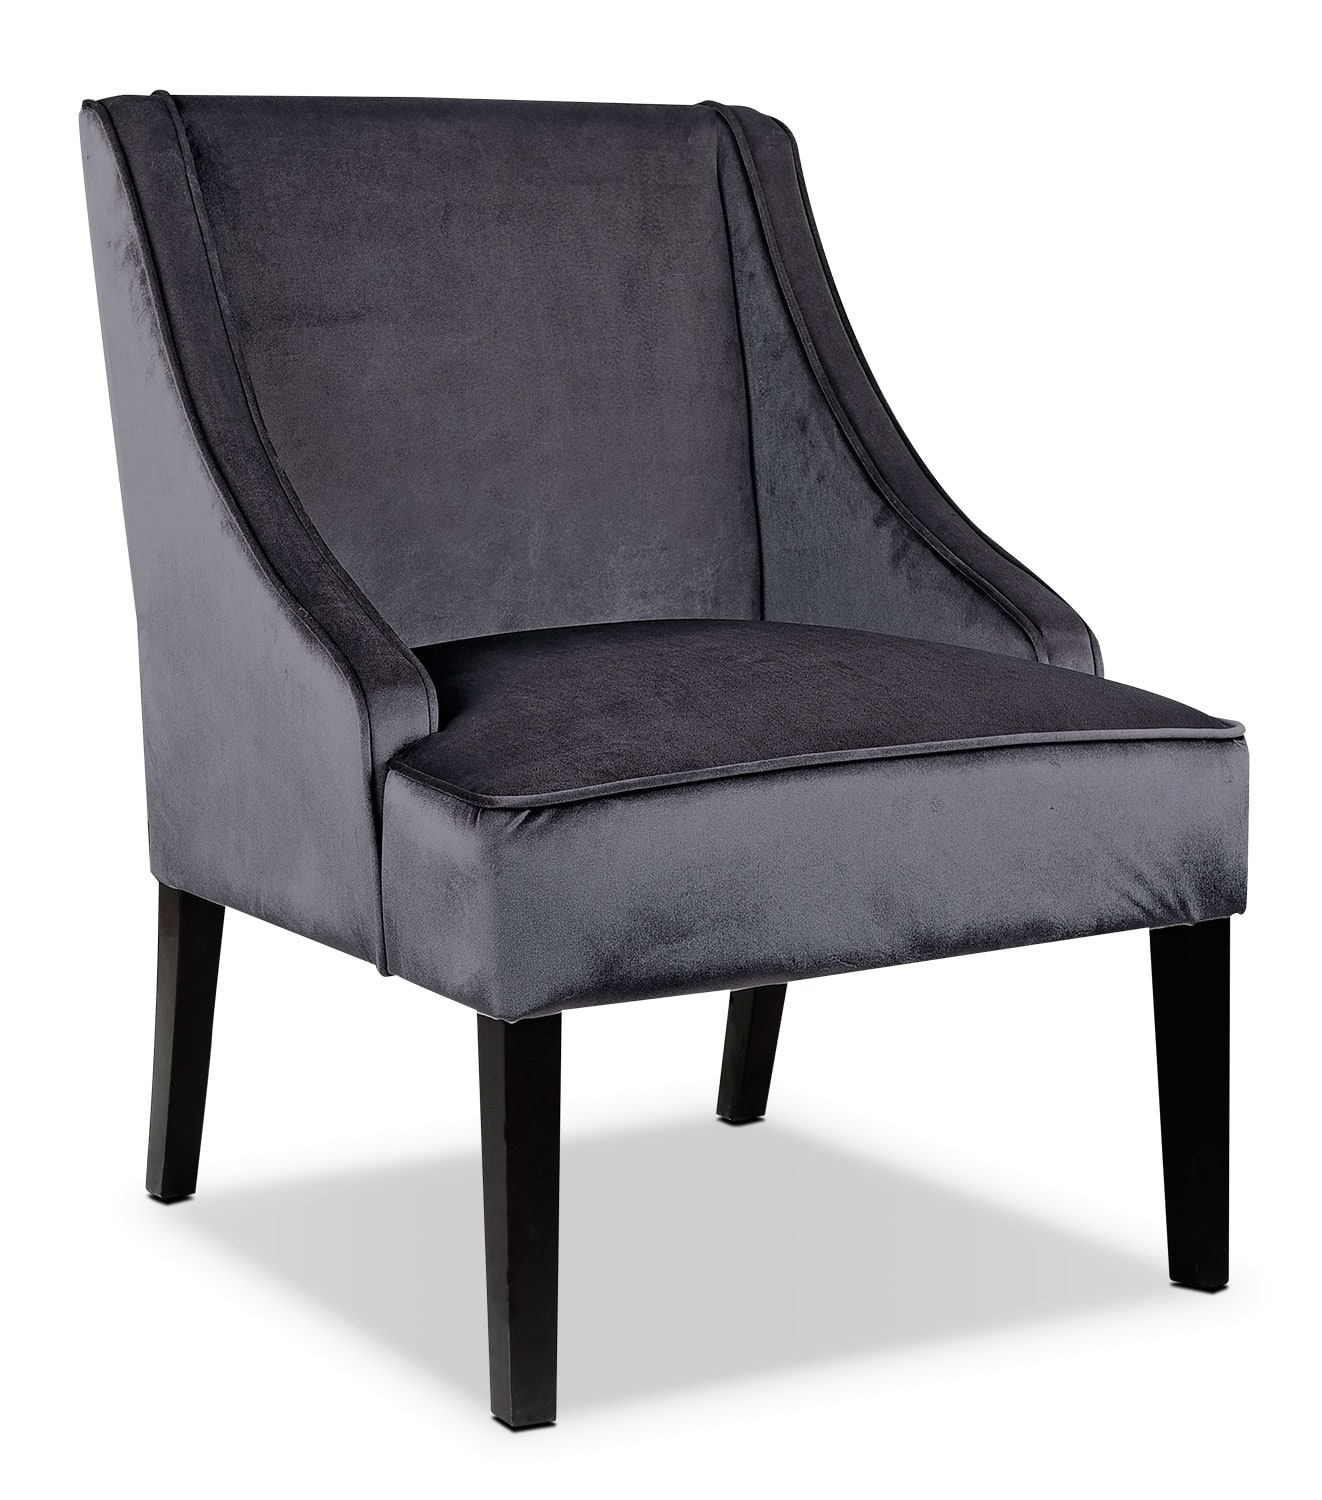 LAD Velvet Fabric Accent Chair – Dark Grey